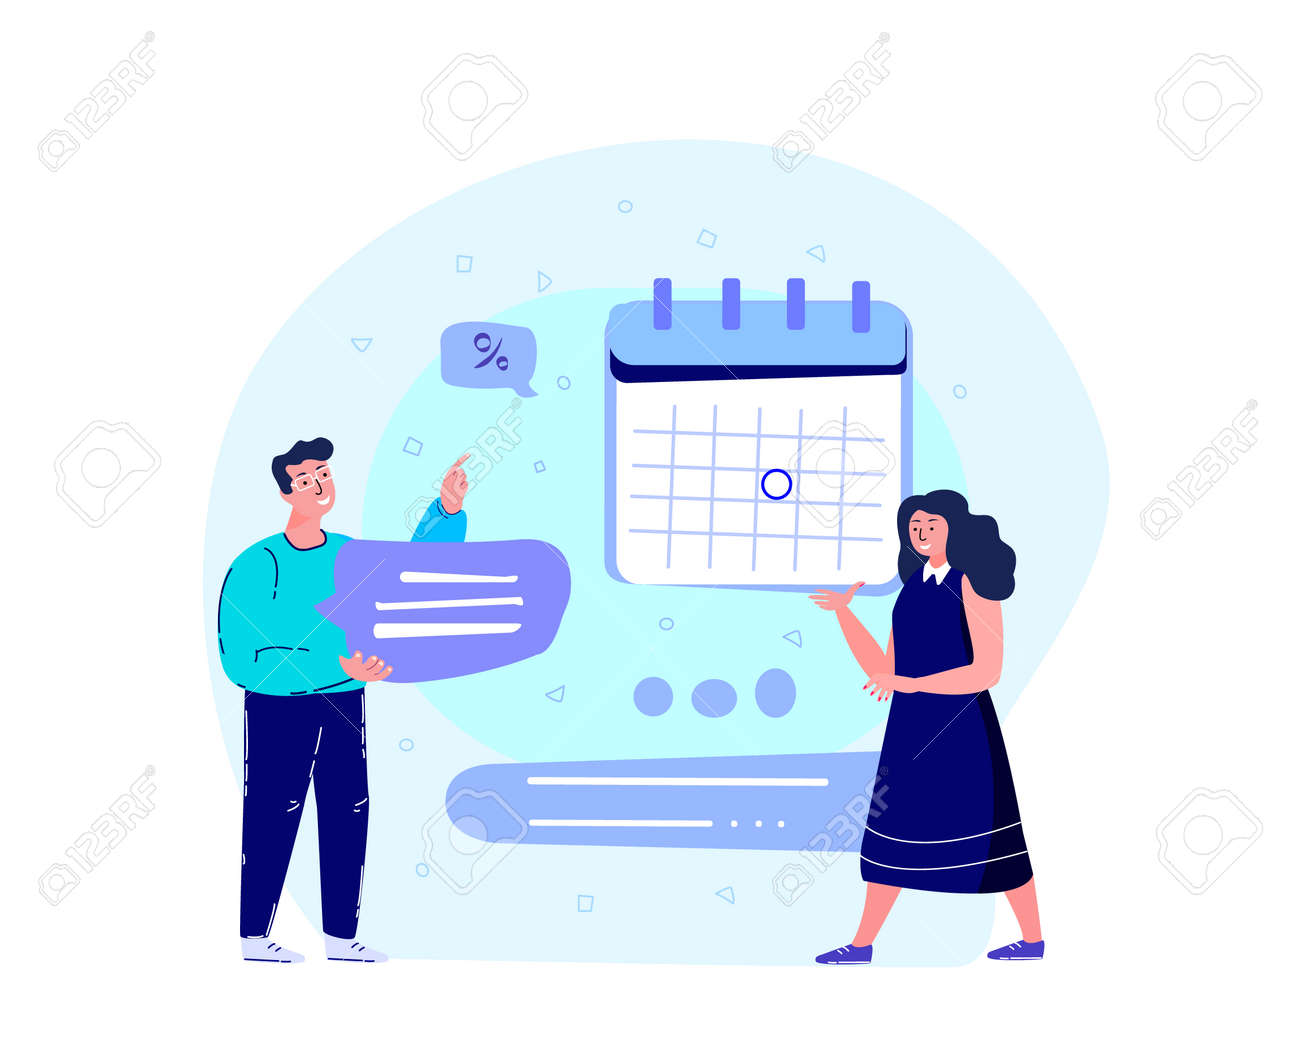 Business Team Man and Woman Workaholics Scheduling a Timetable with Laptop, Calendar.Efficiency Management Collaboration.Organising, Planning Business Concept.Successful Growth, Trade.Vector Illustration - 167665505